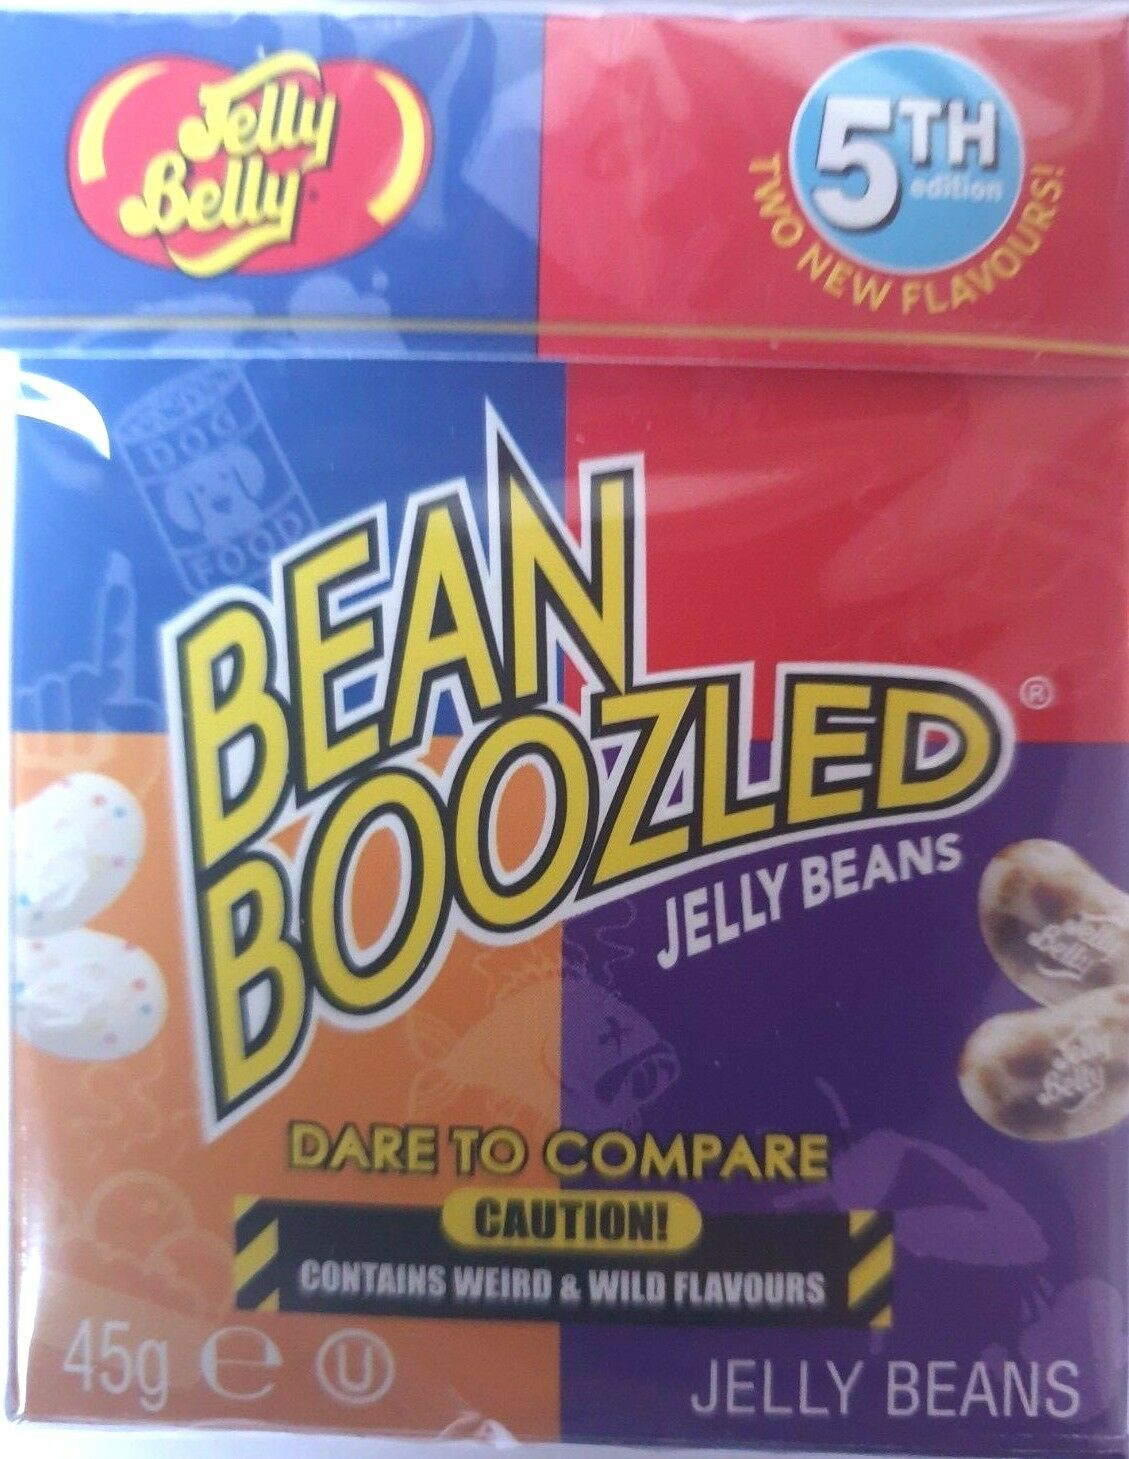 1x Bean Boozled 3rd Edition 45g American Hard Candy Sweets